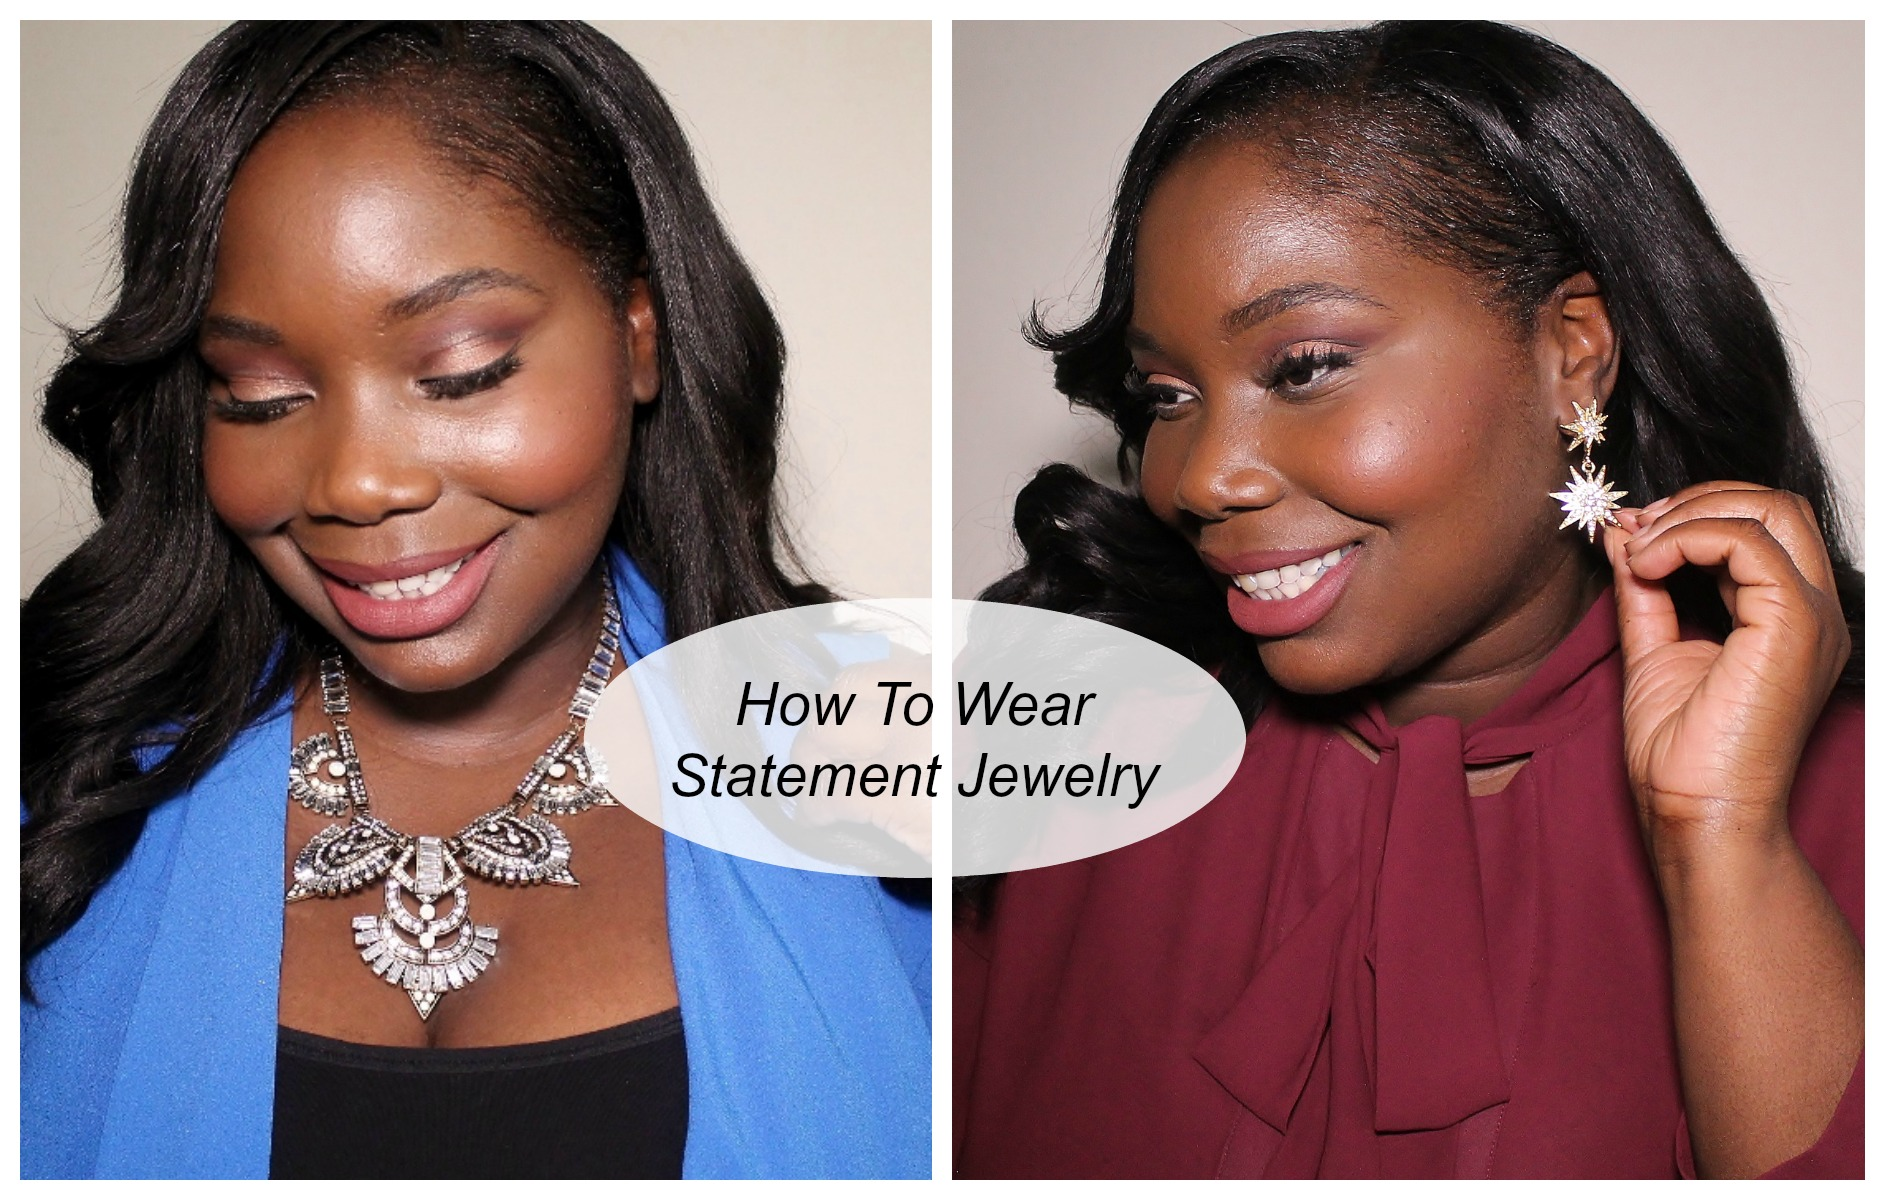 Statement Jewelry cover 2